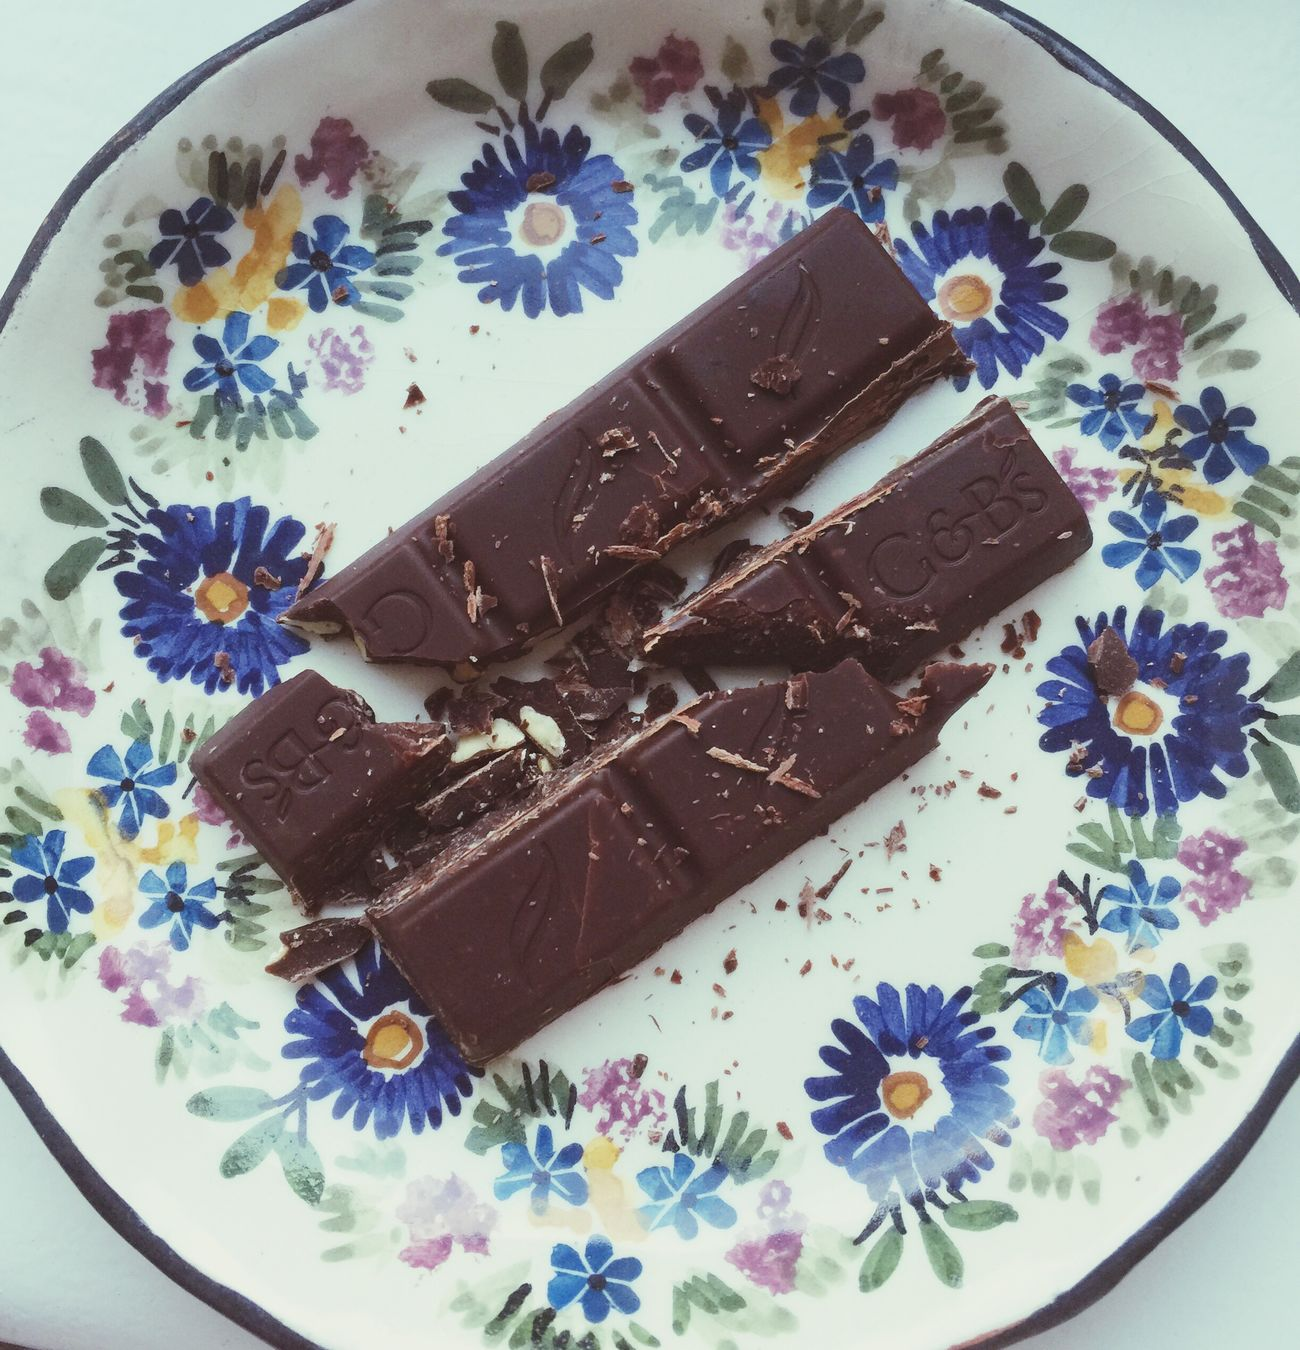 Chocolate Dark Chocolate Dark Chocolate ♥ Organic Food Healthy Food